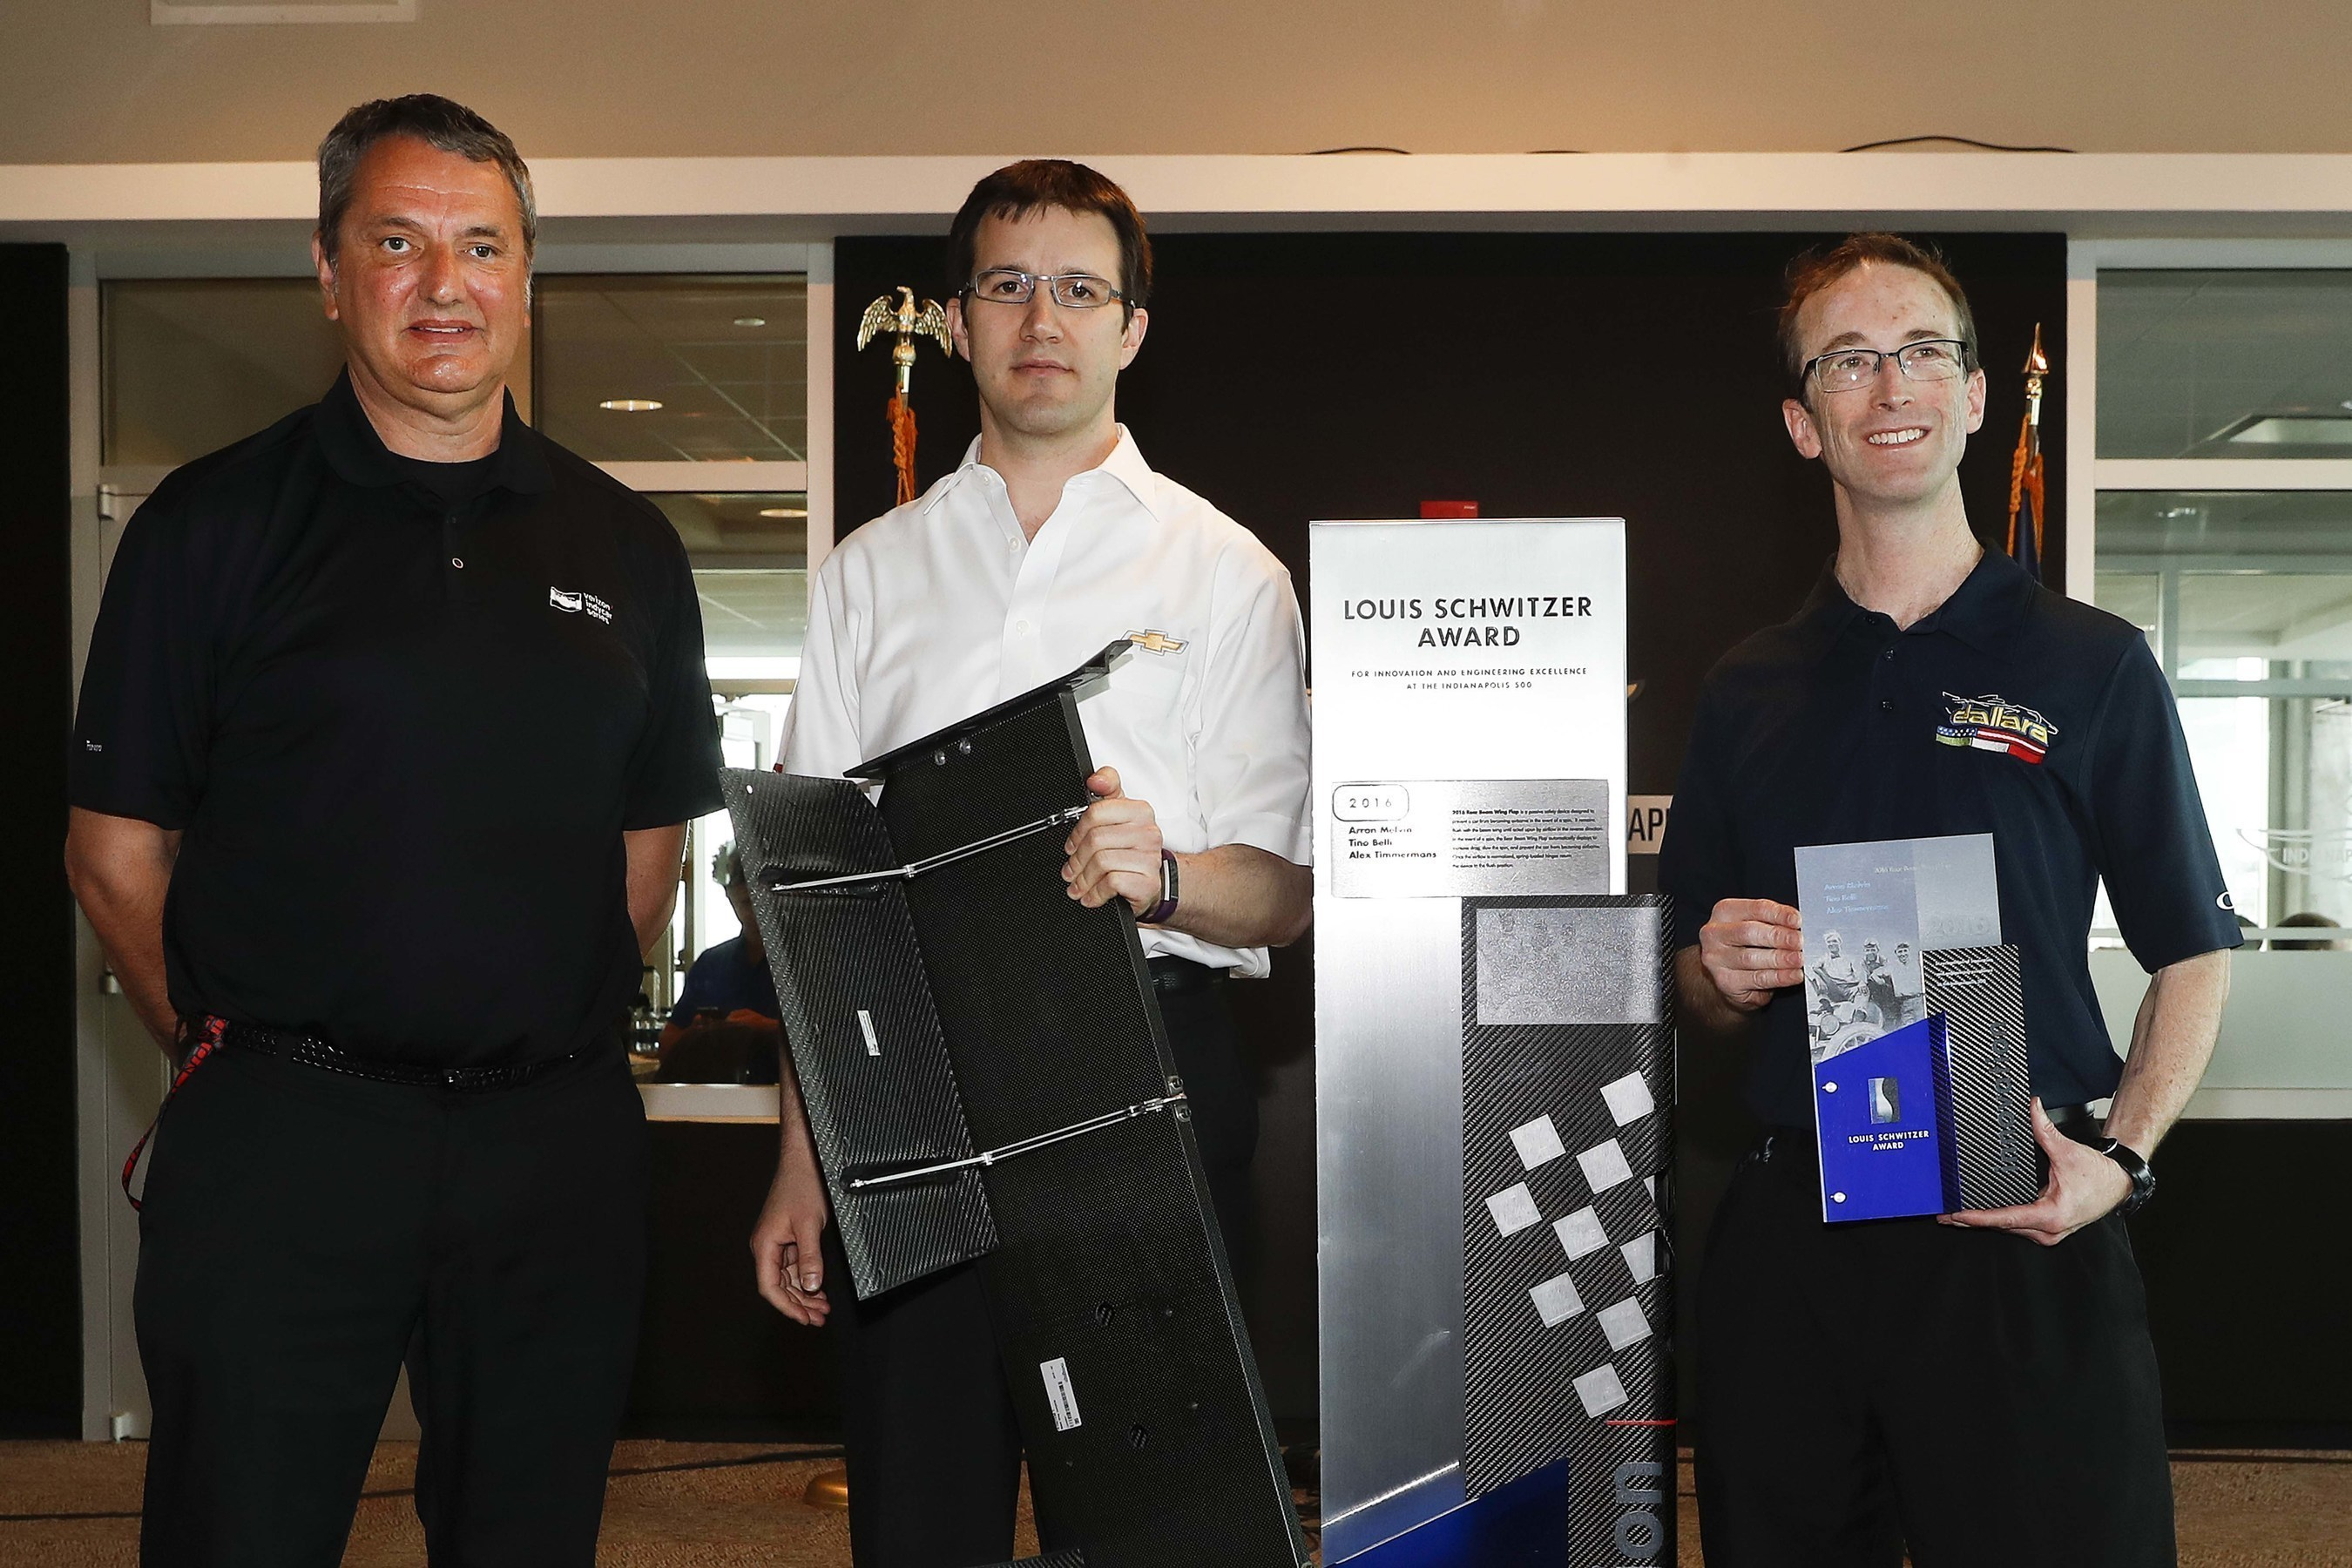 Standing with the Louis Schwitzer Award trophy (left to right) were award winners Tino Belli from INDYCAR, Arron Melvin from Chevrolet, and Alex Timmermans from Dallara for the Rear Beam Wing Flap.